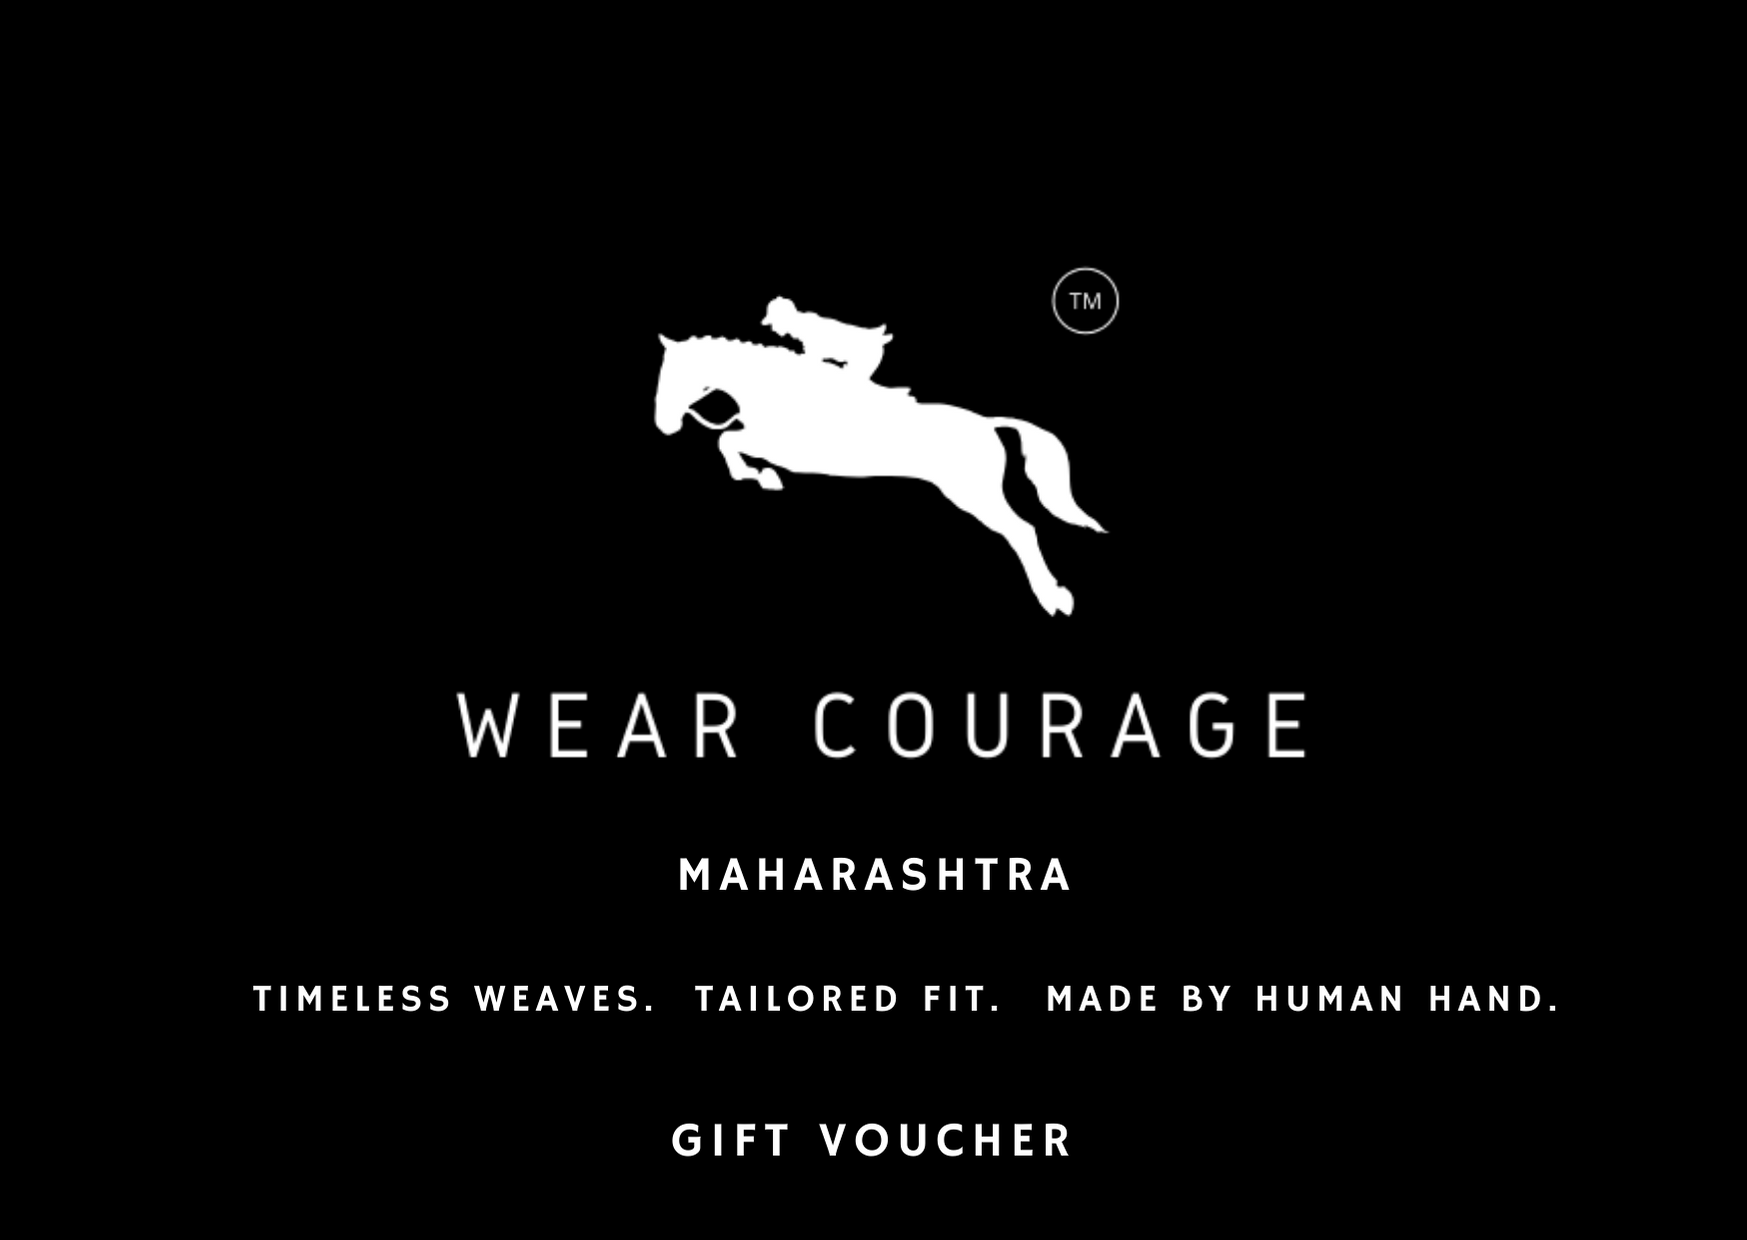 WEAR COURAGE GIFT VOUCHER - WEAR COURAGE